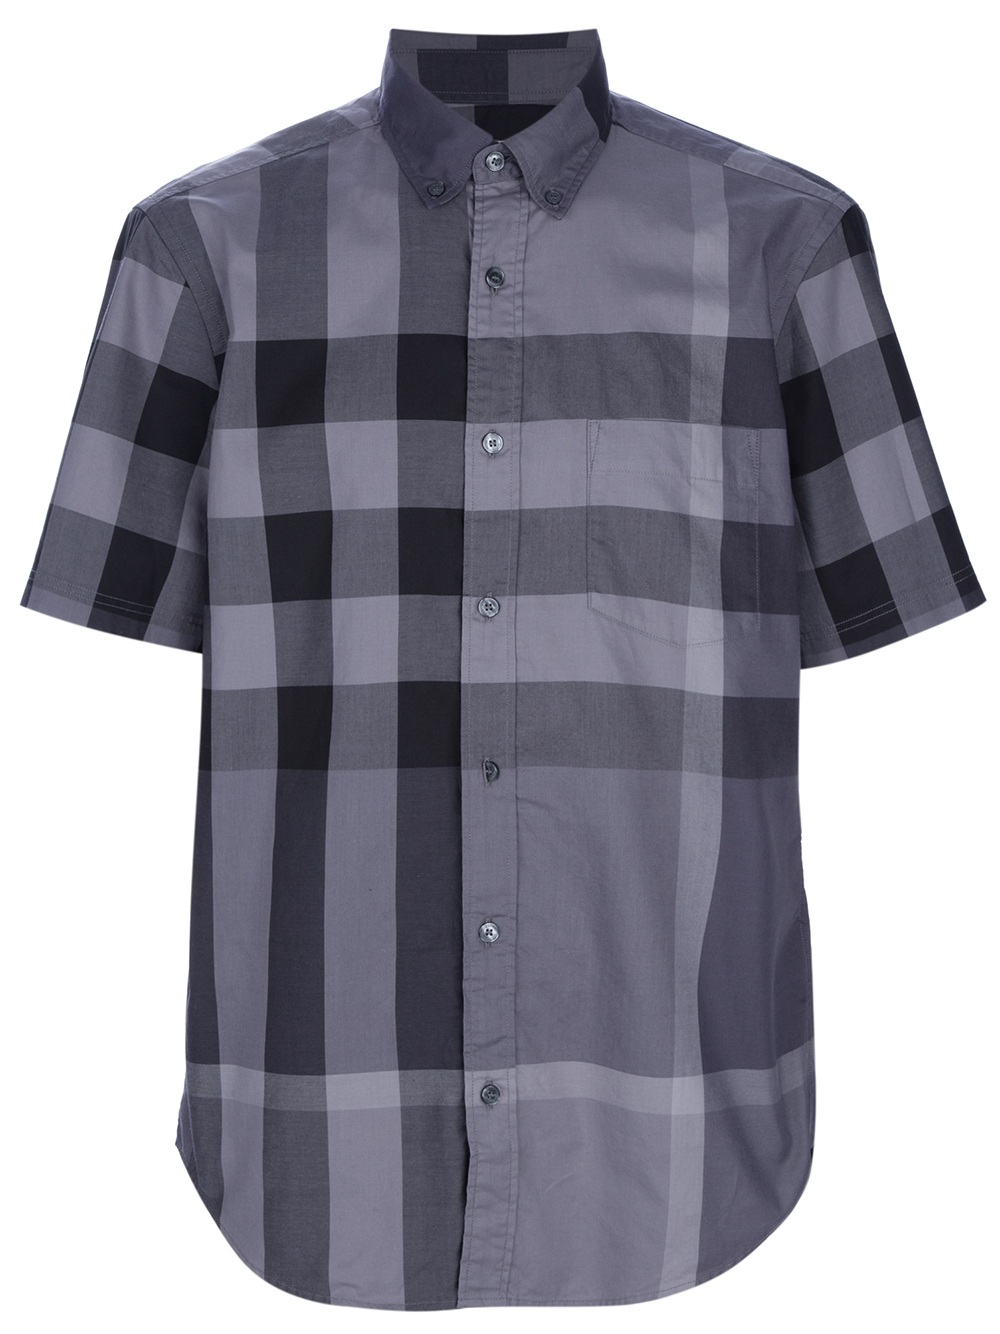 Lyst burberry brit checked short sleeve shirt in gray for Burberry brit checked shirt